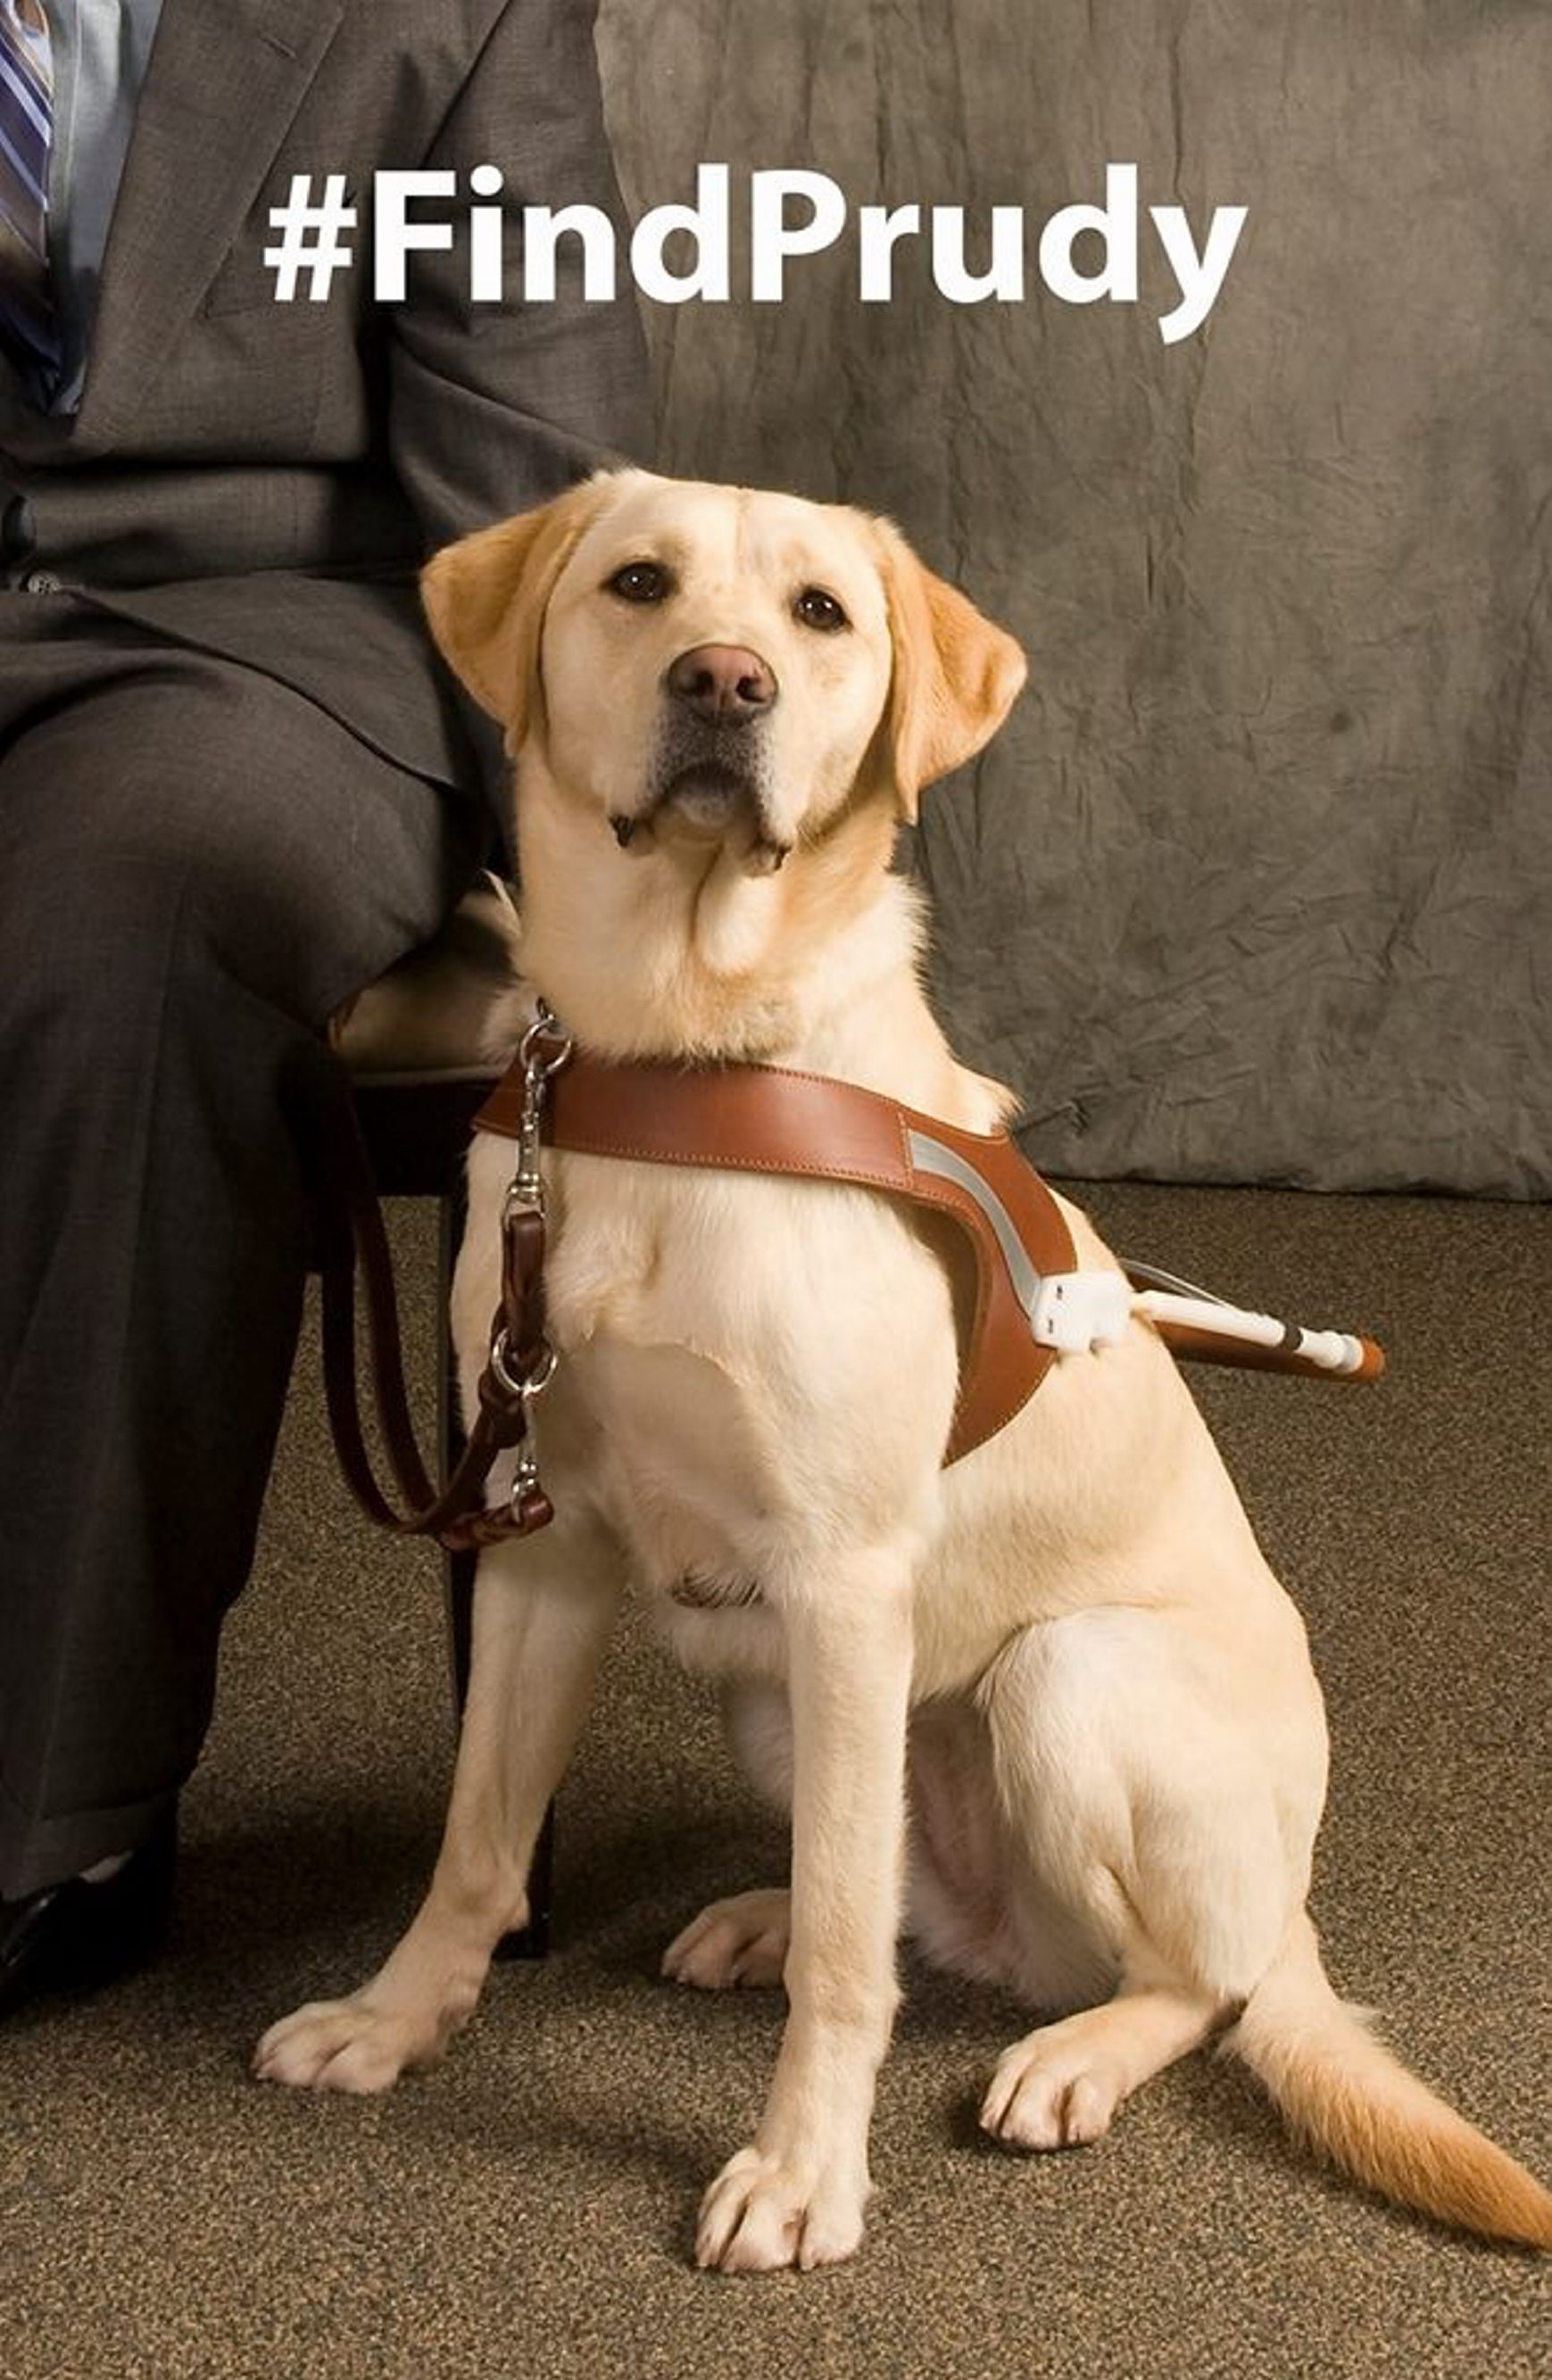 It is believed that something spooked Prudy, a 3-year-old yellow Labrador and guide dog, causing her to run from her owner's home.